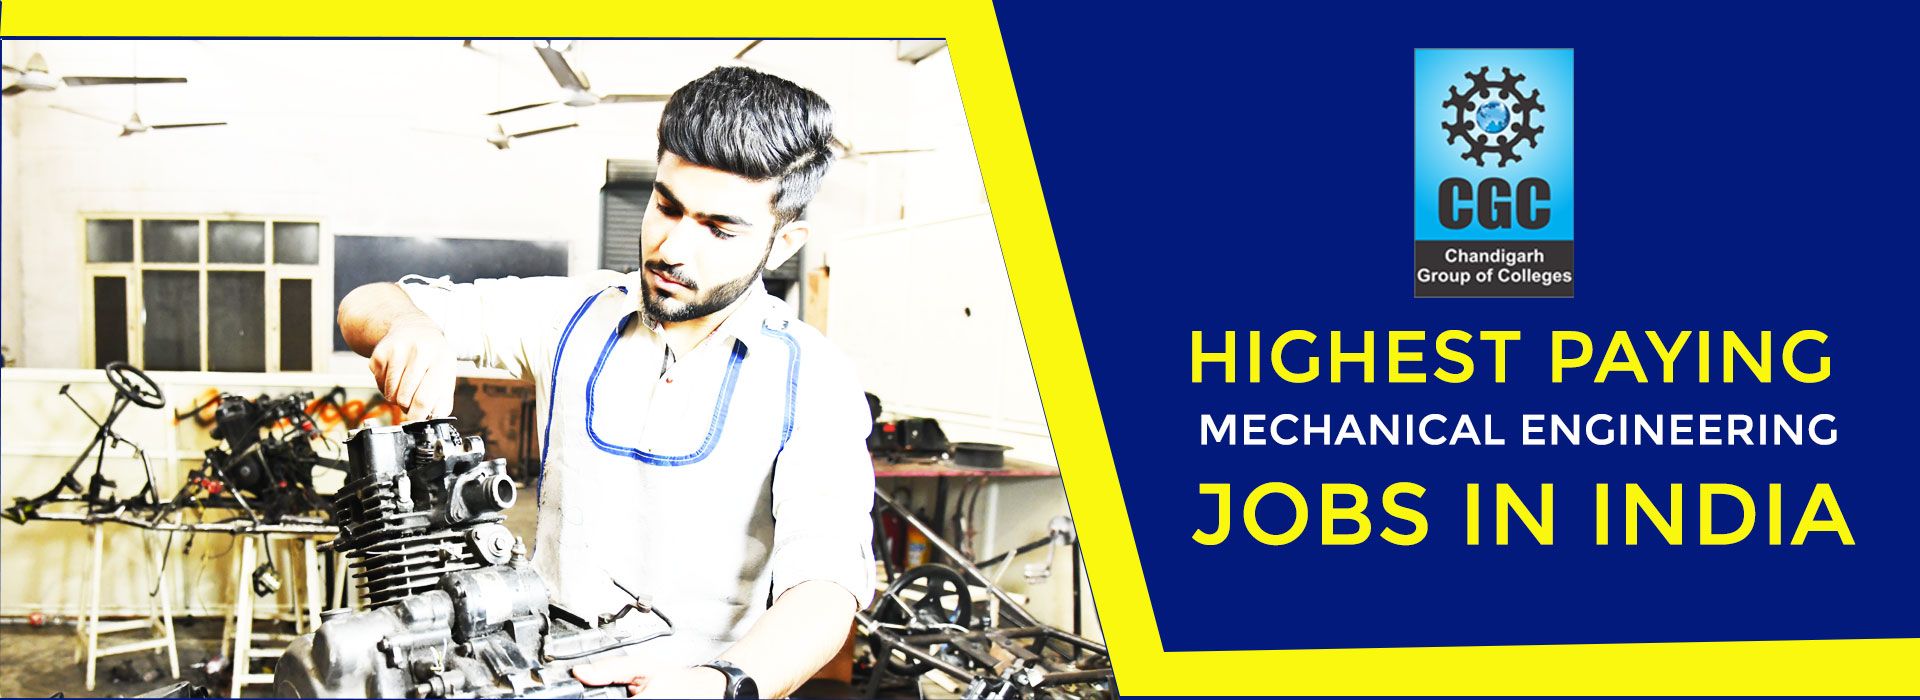 Highest Paying Mechanical Engineering Jobs in India